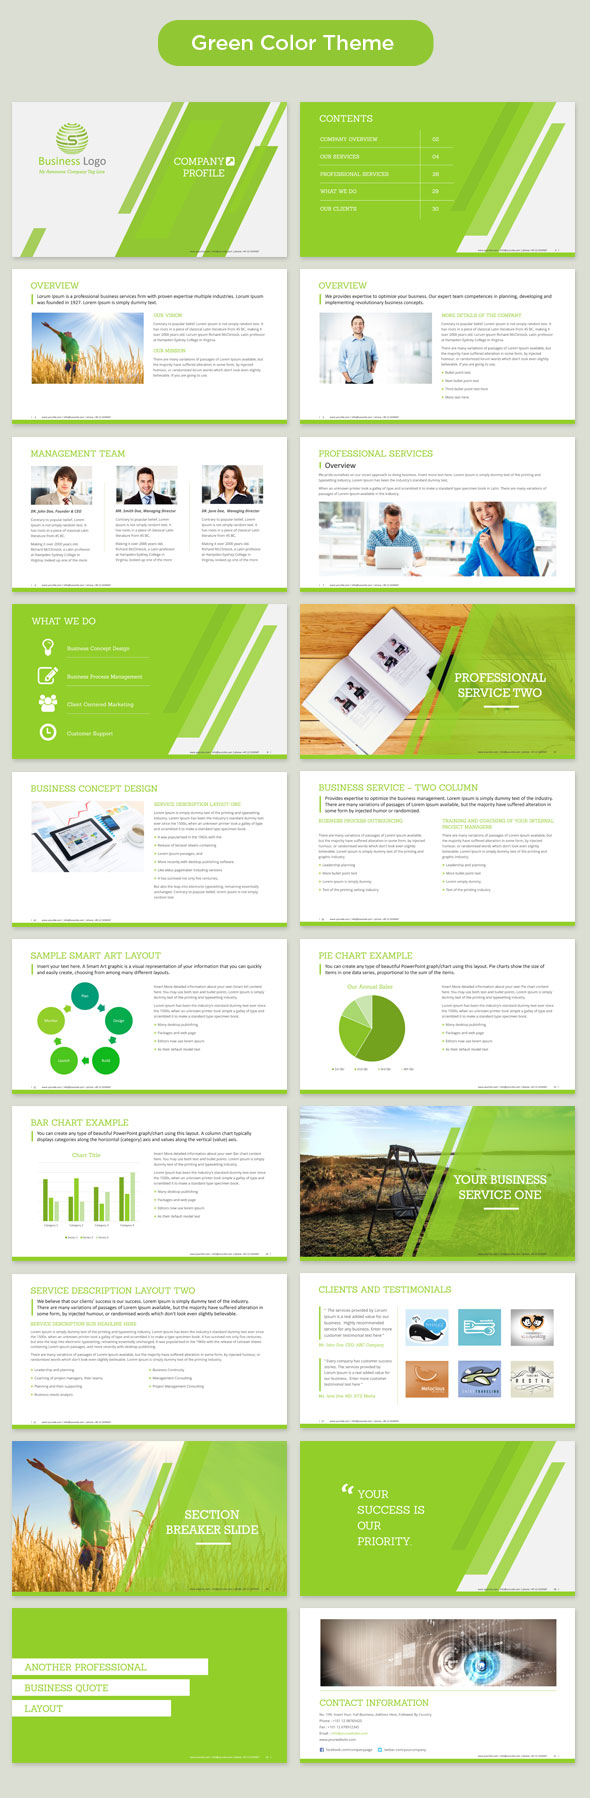 Company profile powerpoint template 350 master ppt slide templates corporate profile powerpoint template green toneelgroepblik Choice Image